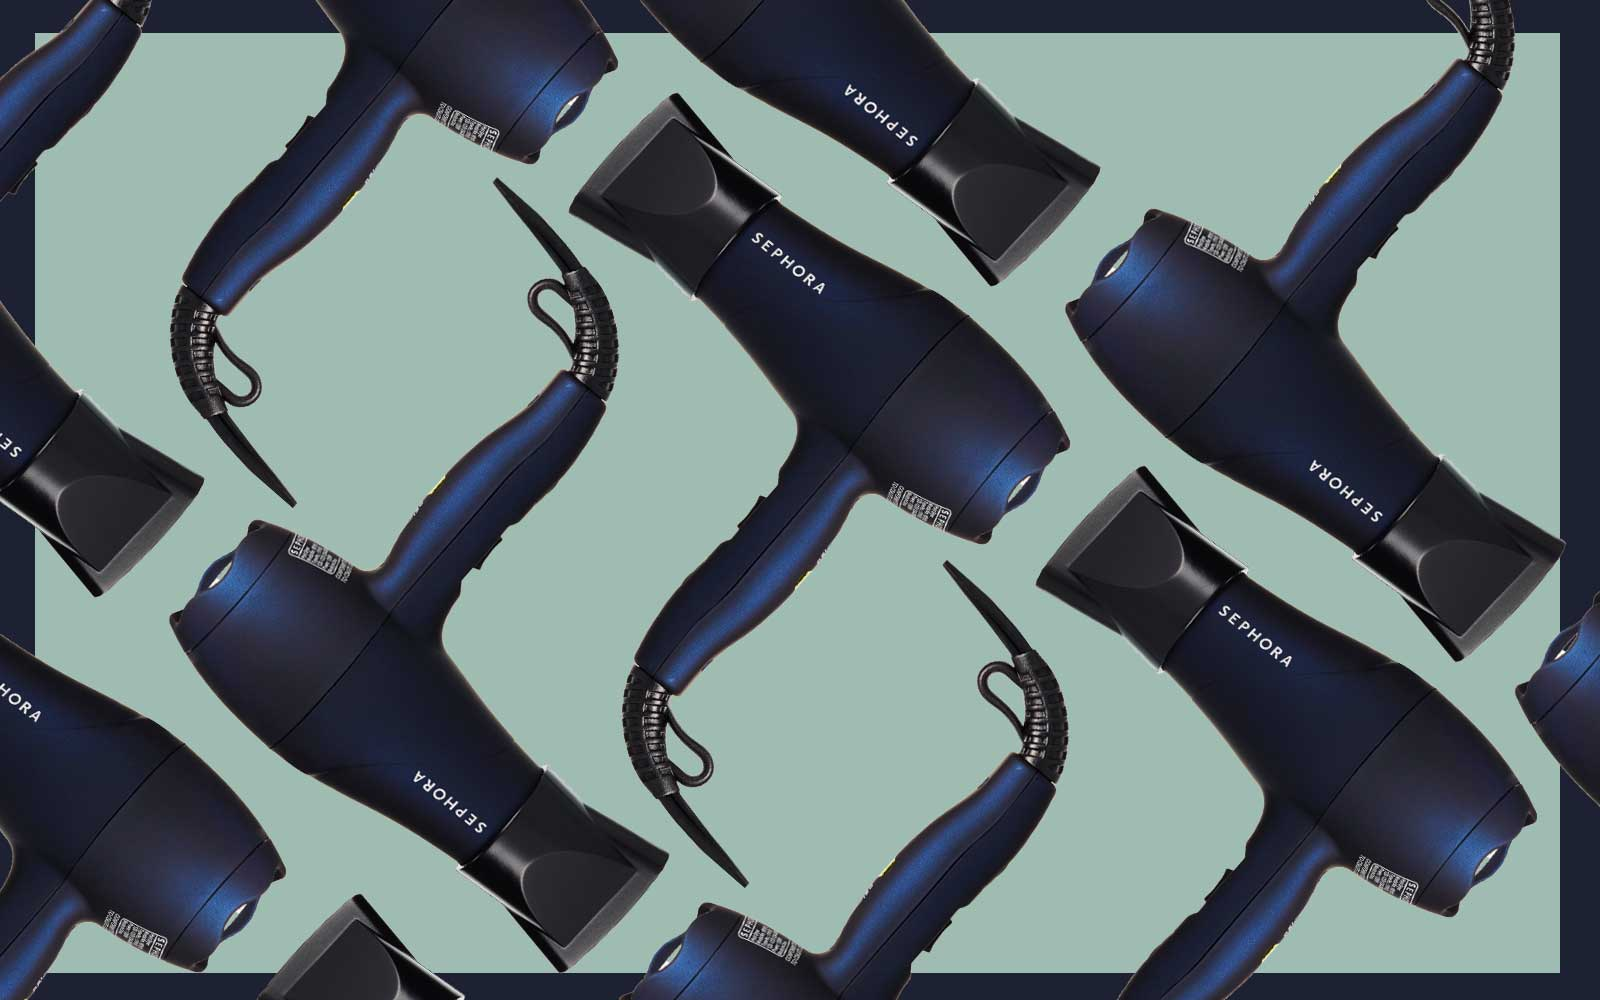 The Travel Hair Dryer So Good It Replaced My Full-size Blow Dryer